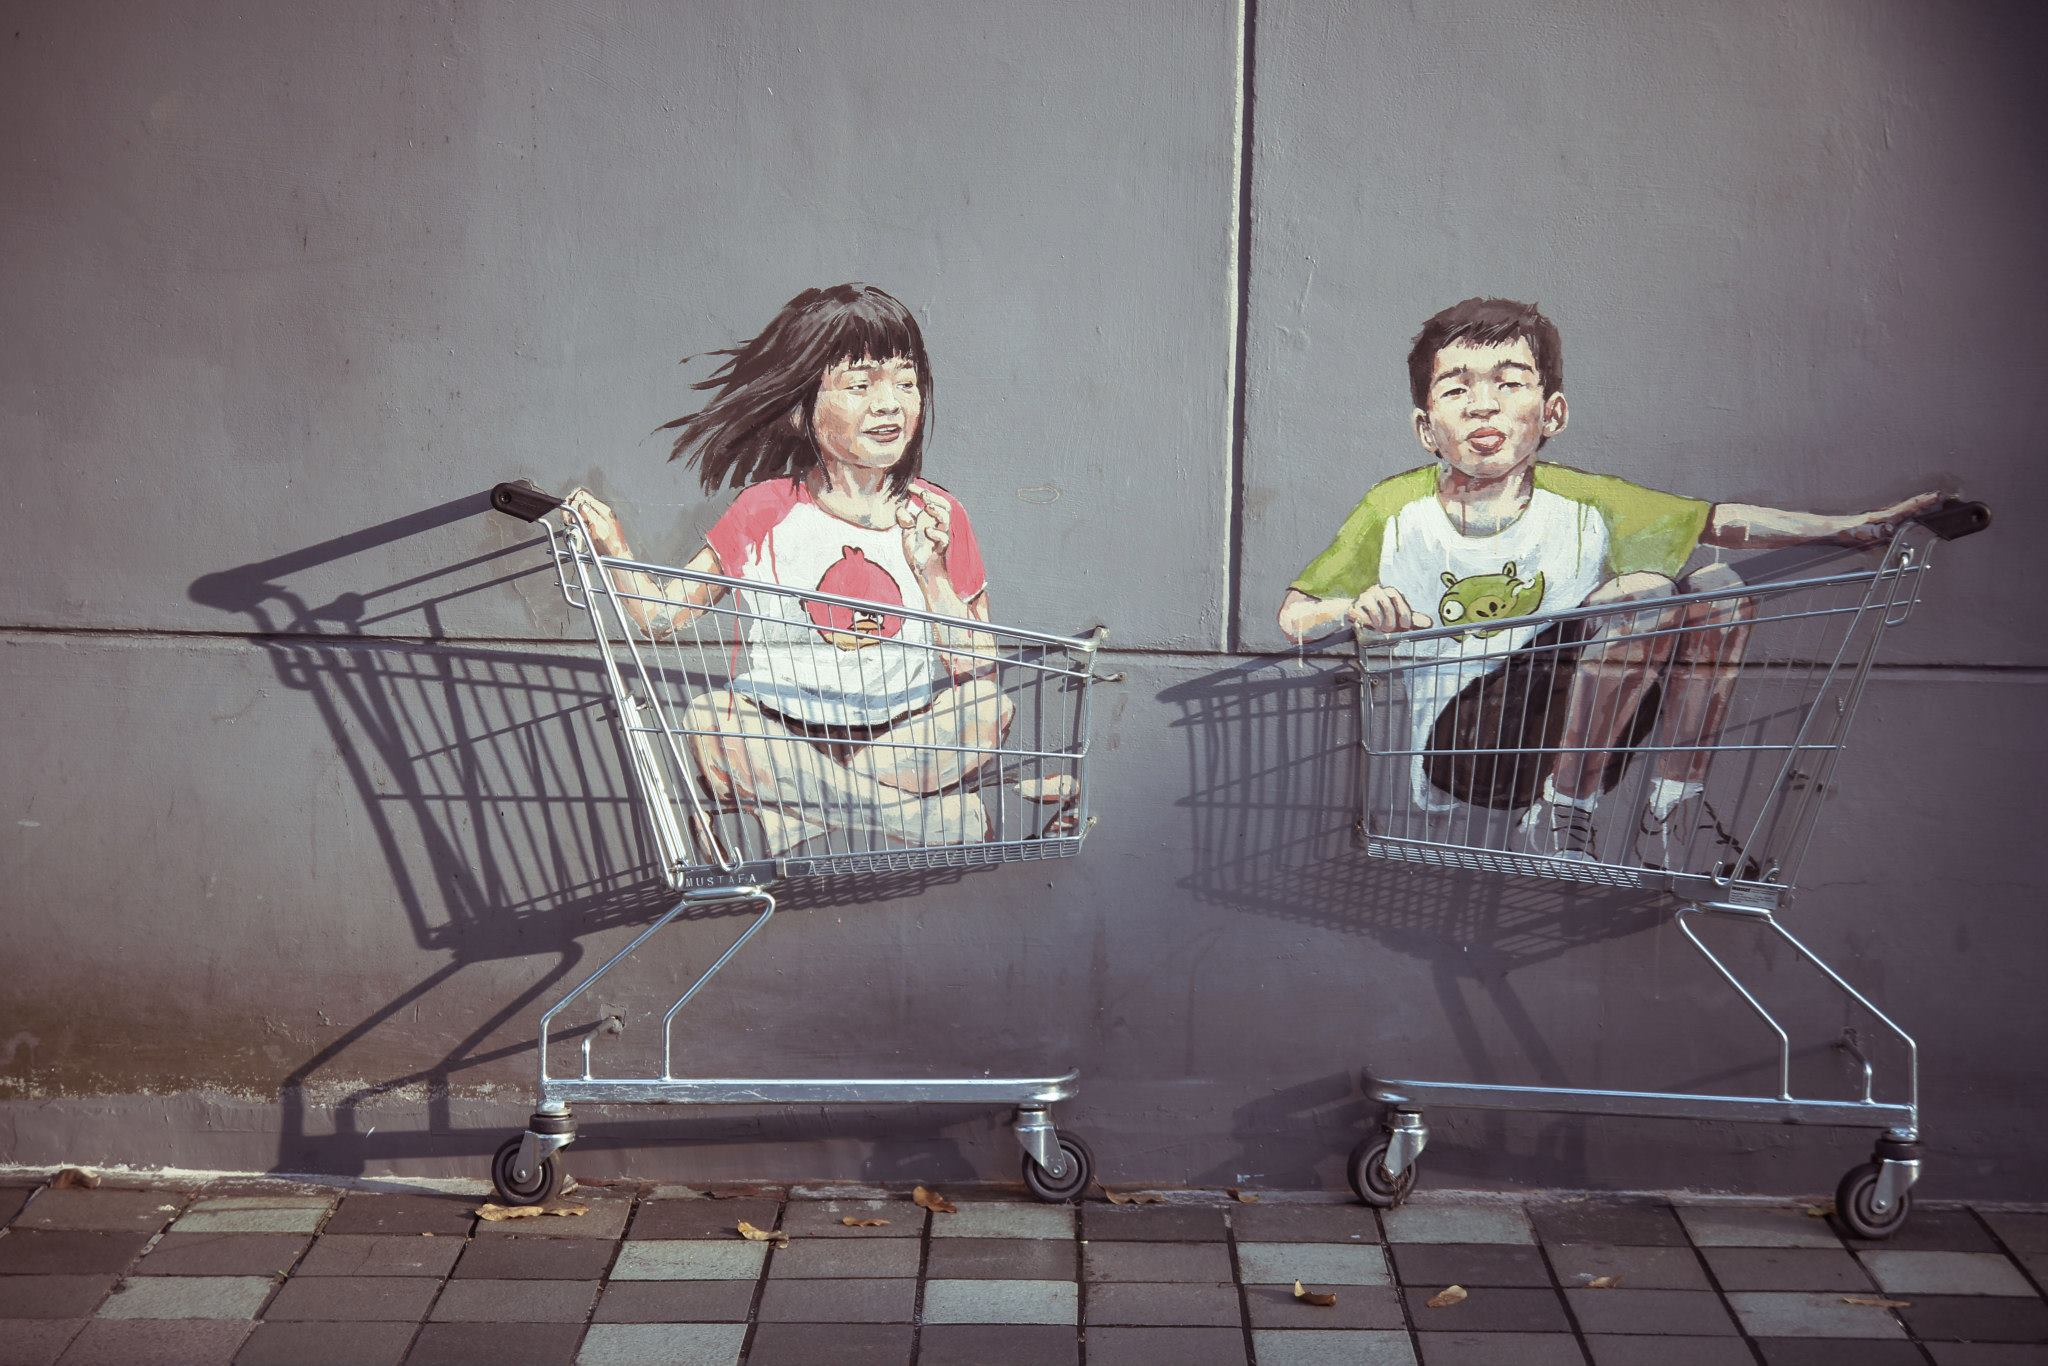 ernest-zacharevic-street-art-location-singapore